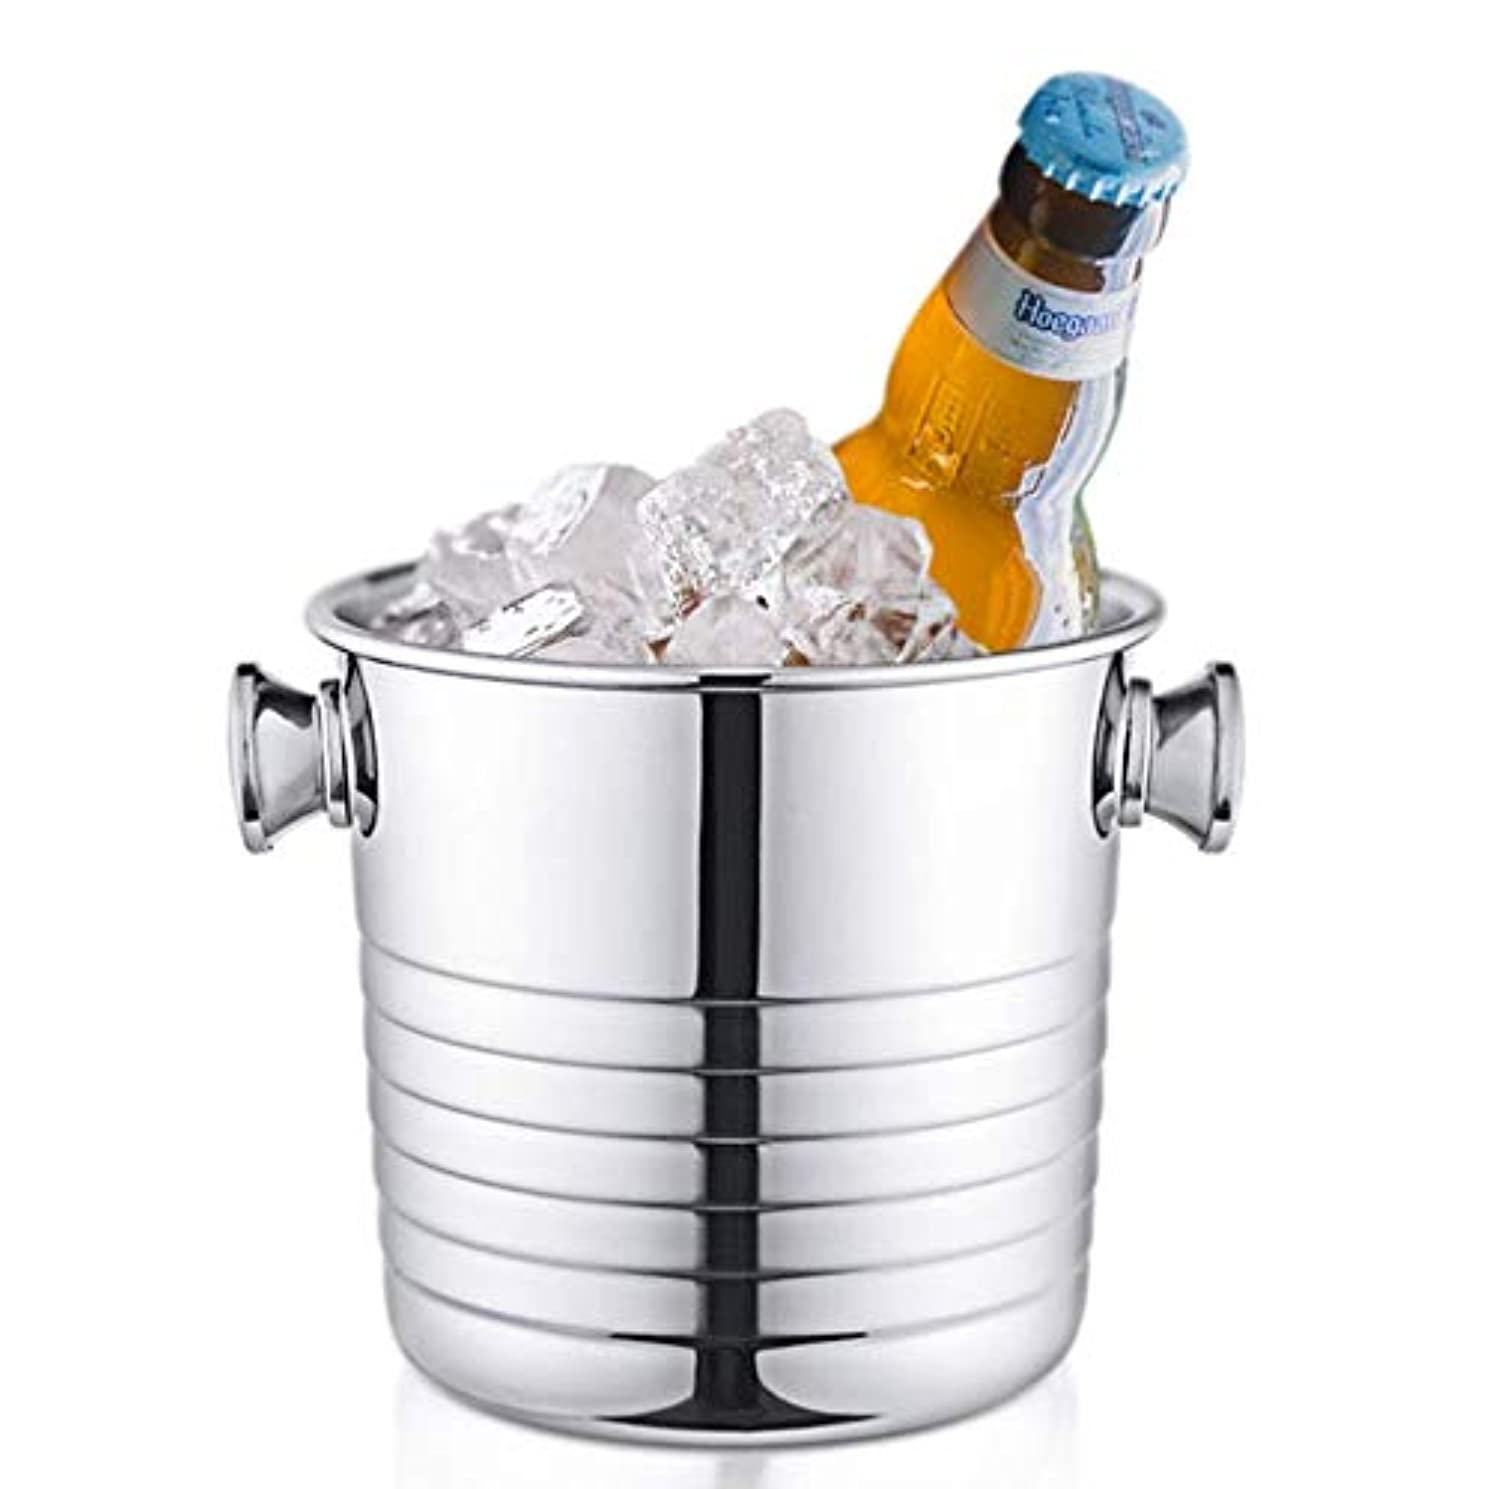 PLLXY Stainless Steel Ice Bucket Handle,Insulated Champagne Bucket,Brushed Wine Bucket Beer Bucket Ice Tub Bar Ktv Outdoor Home-a 1.8l